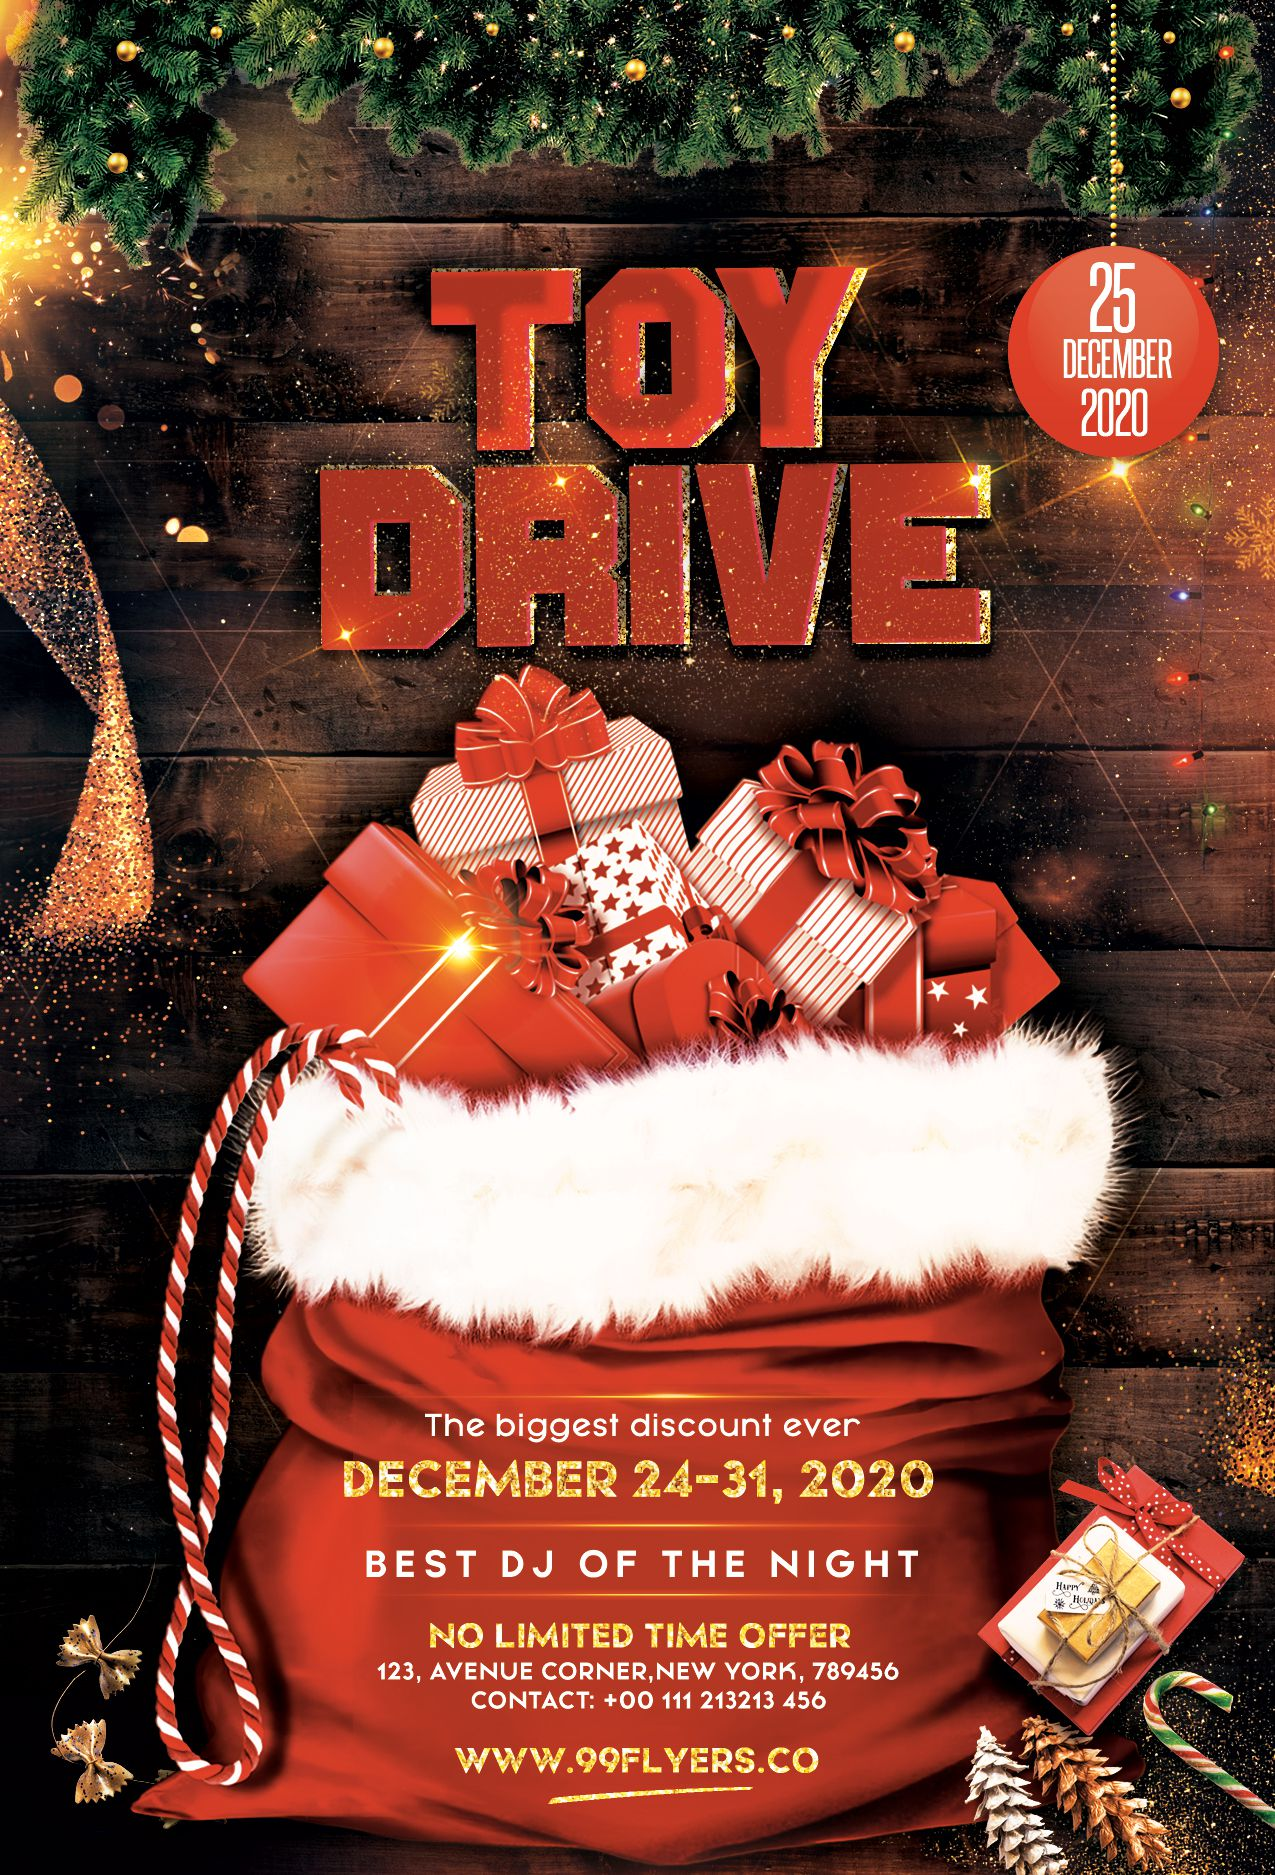 006 Breathtaking Toy Drive Flyer Template Picture  Holiday Download Free WordFull